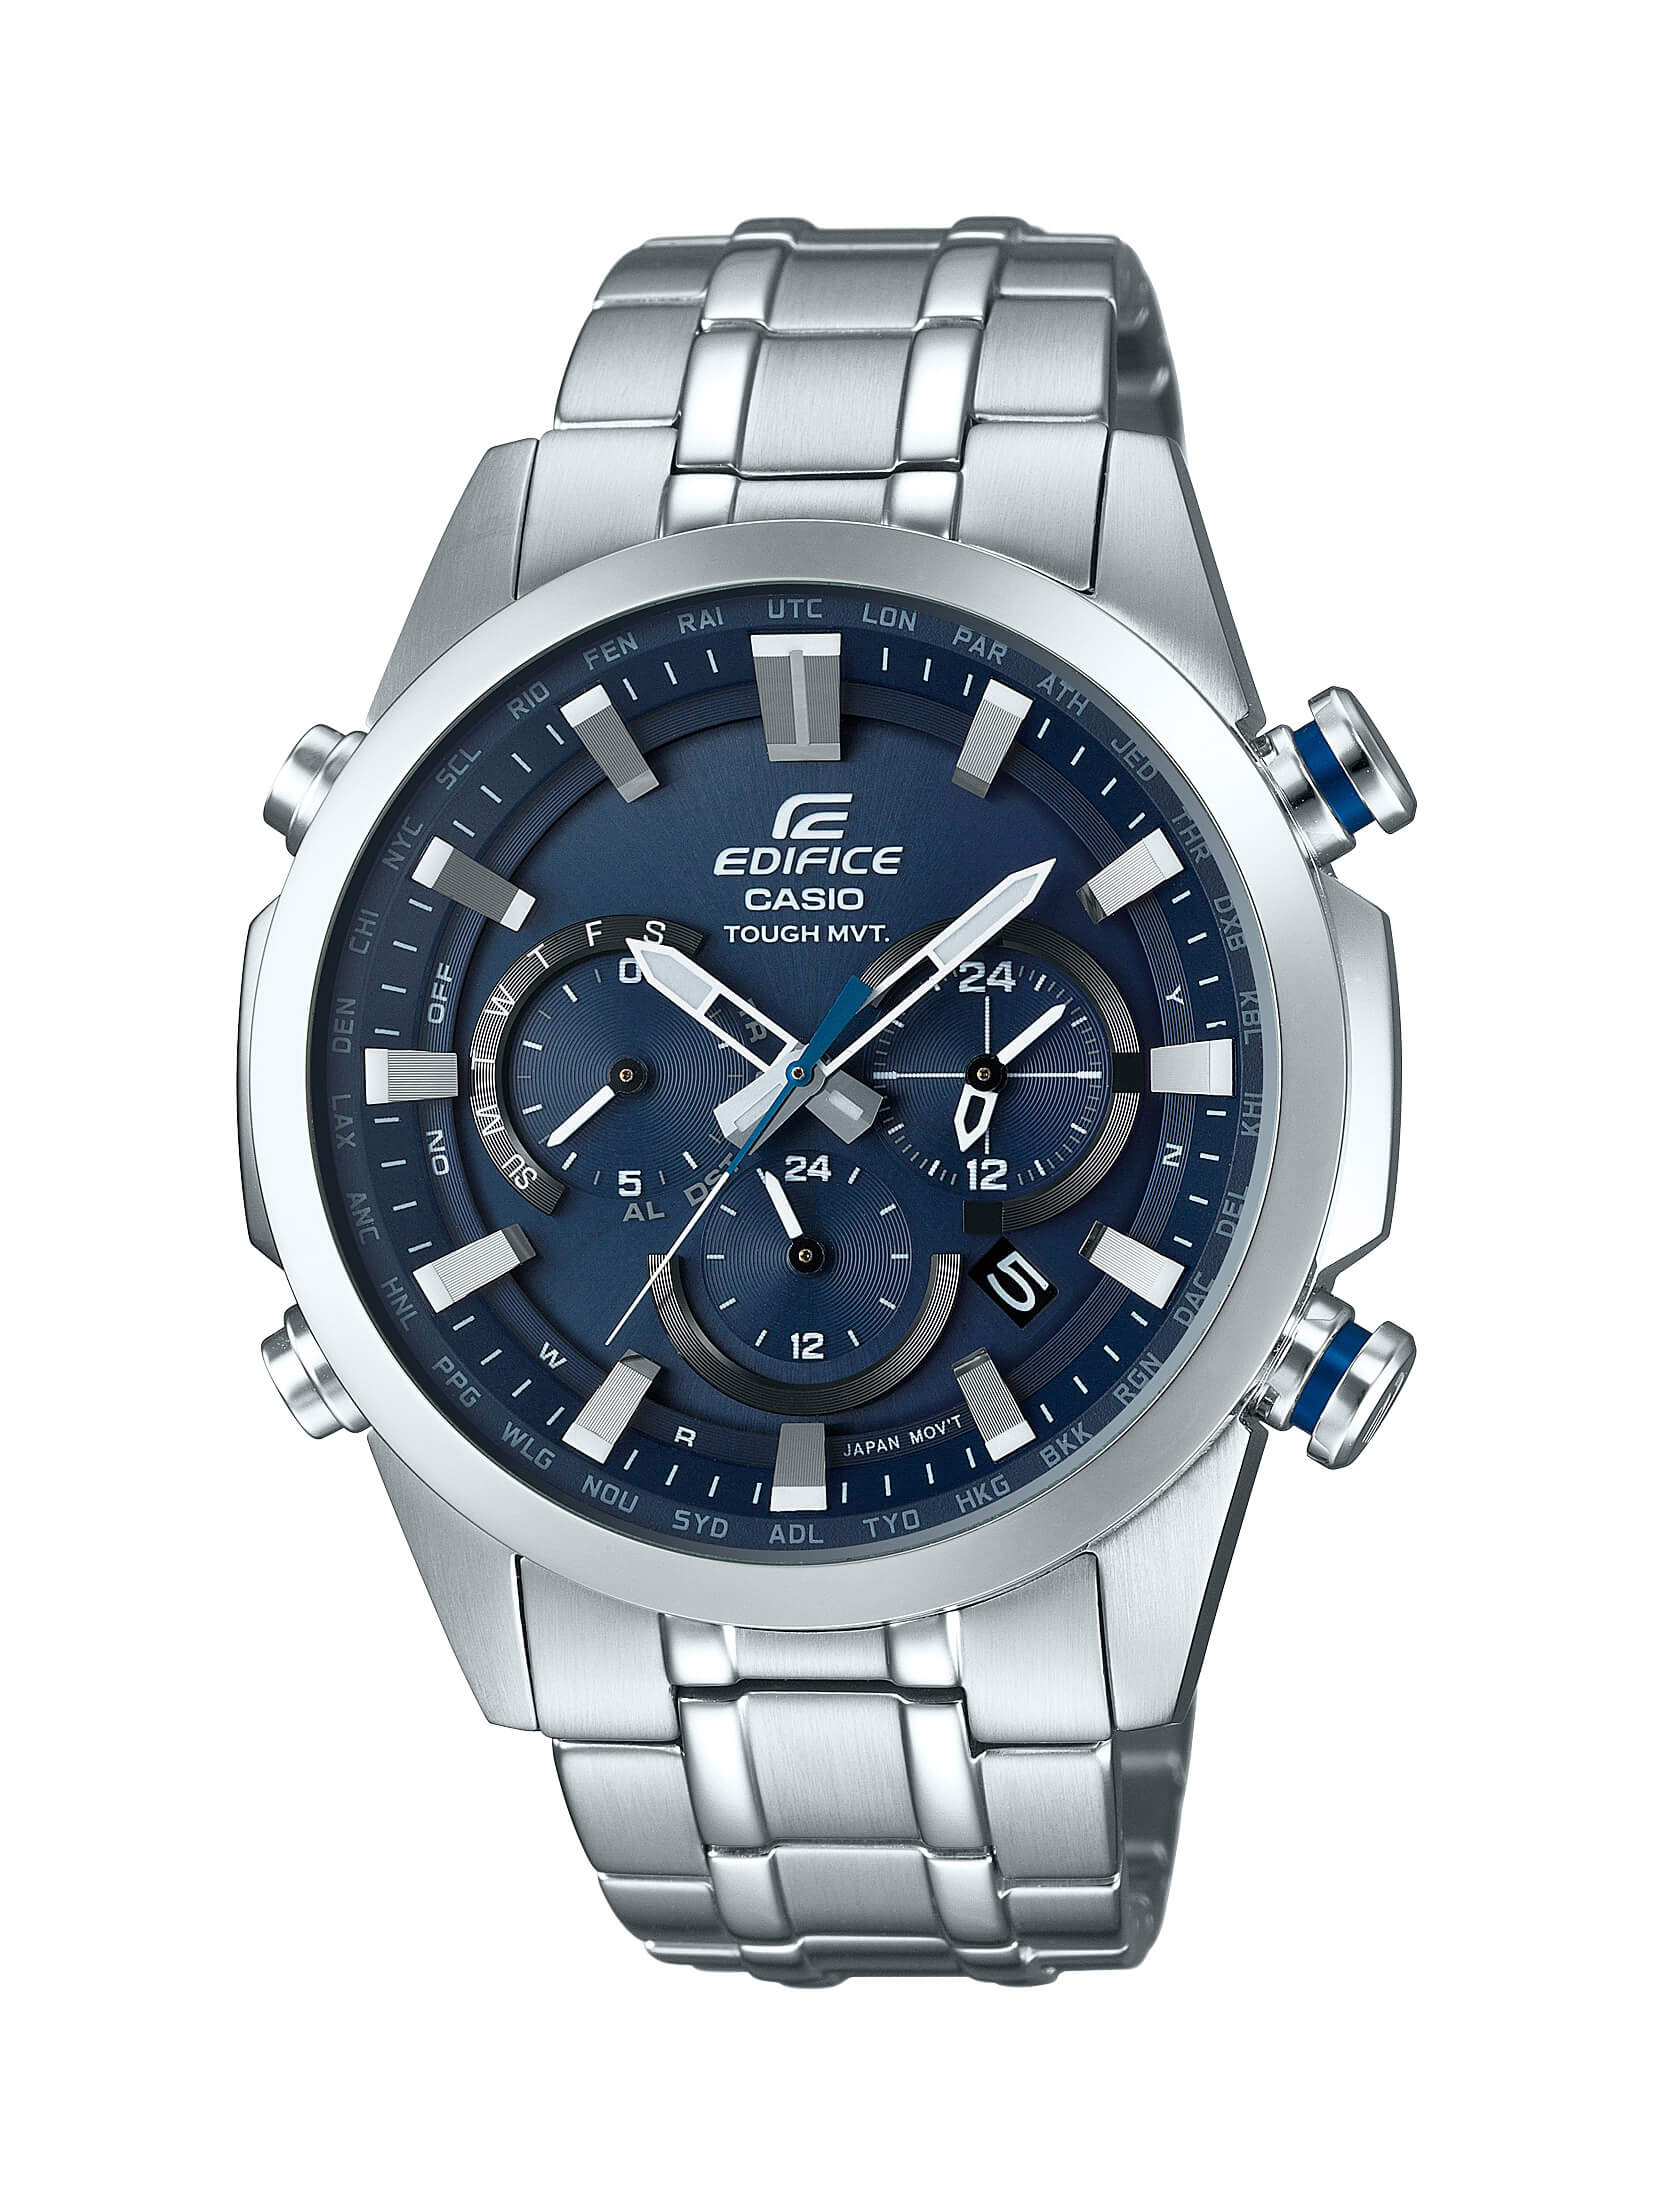 EDIFICE EQW-T630JD-2AJF